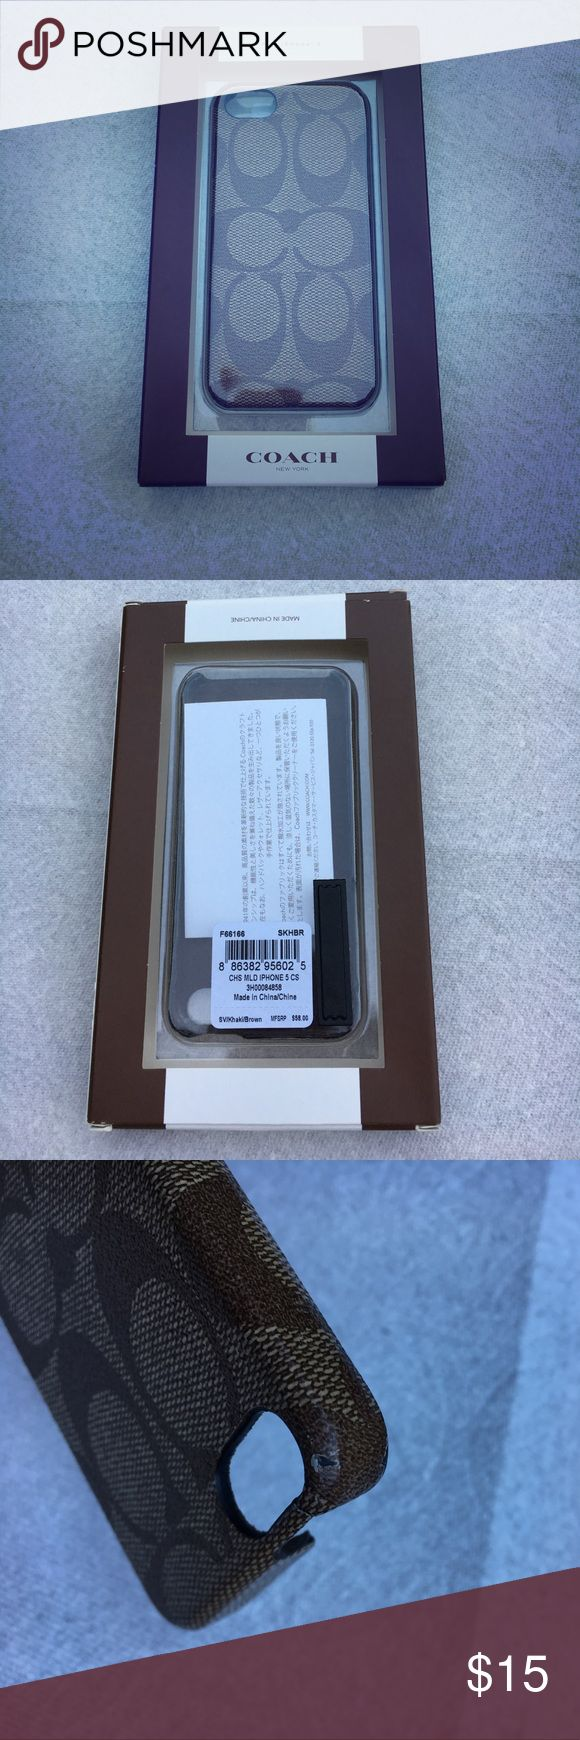 Iphone 5 Coach case khaki/brown. PRICE CUT iPhone case that's some kind of leather, khaki with brown C's. Has some use to it with a crack at the top but it holds very well. As it shows in the pictures there are a few scratches on it but it is priced accordingly. Coach Accessories Phone Cases